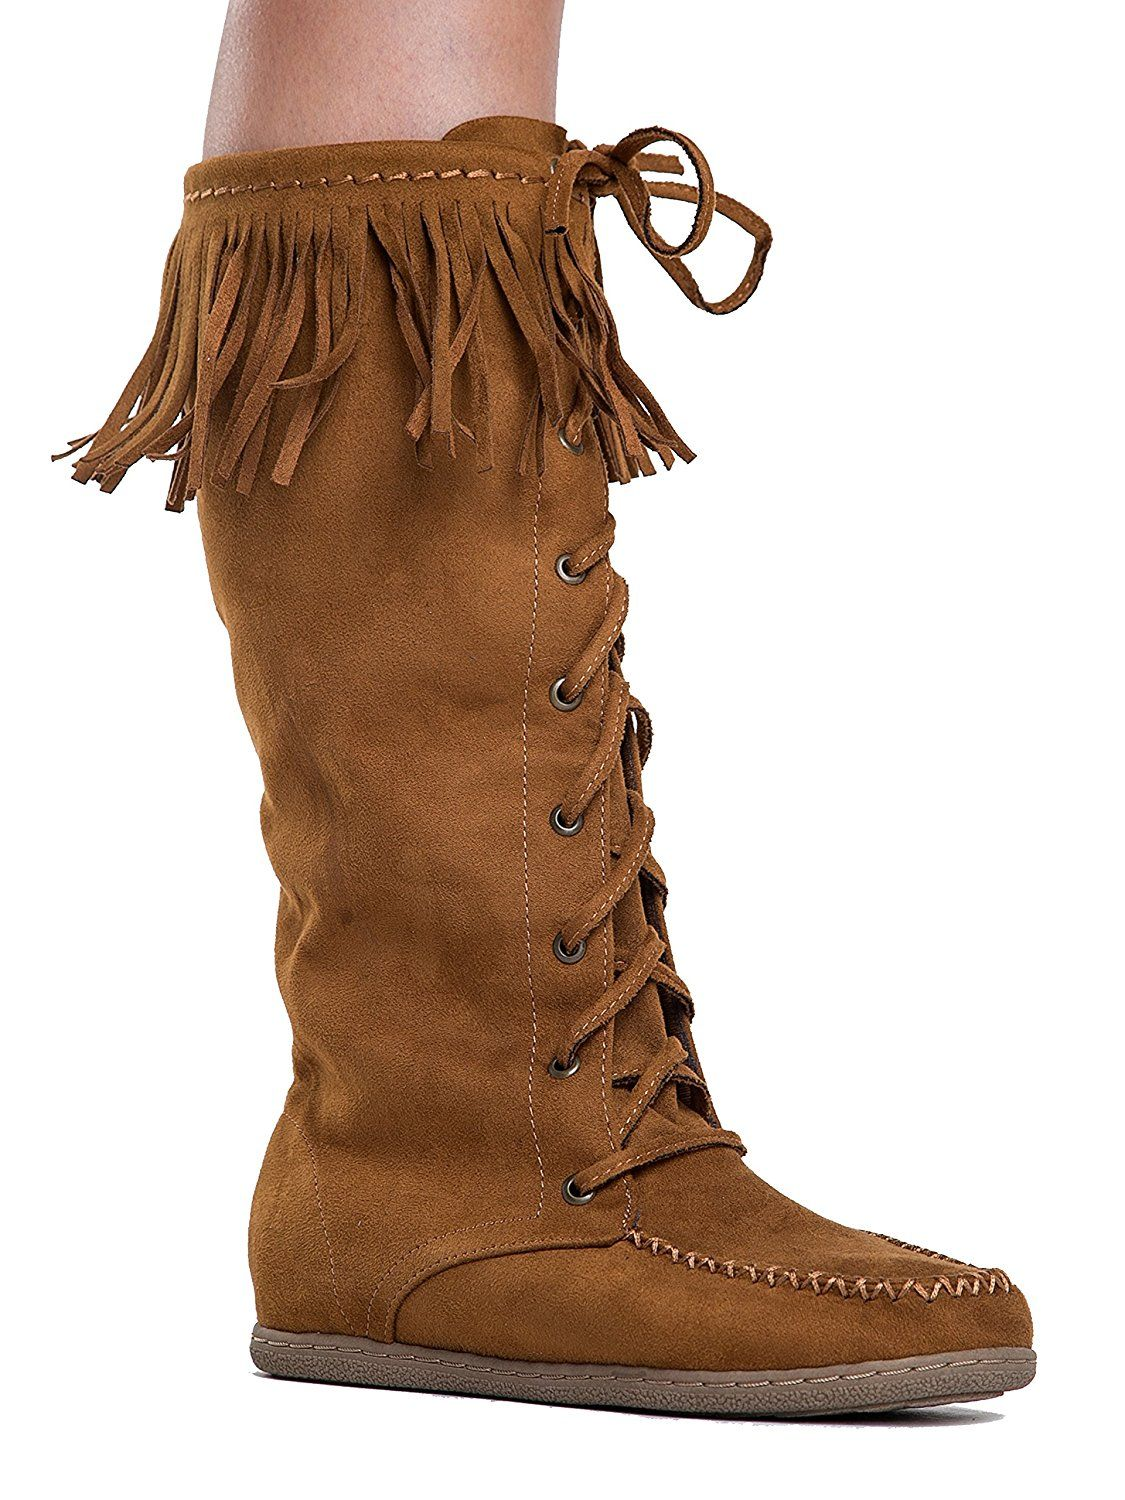 4b65424a641b Vinery Knee High Fringe Lace Up Moccasin Flat Boots Boots Clothing, Shoes &  Accessories